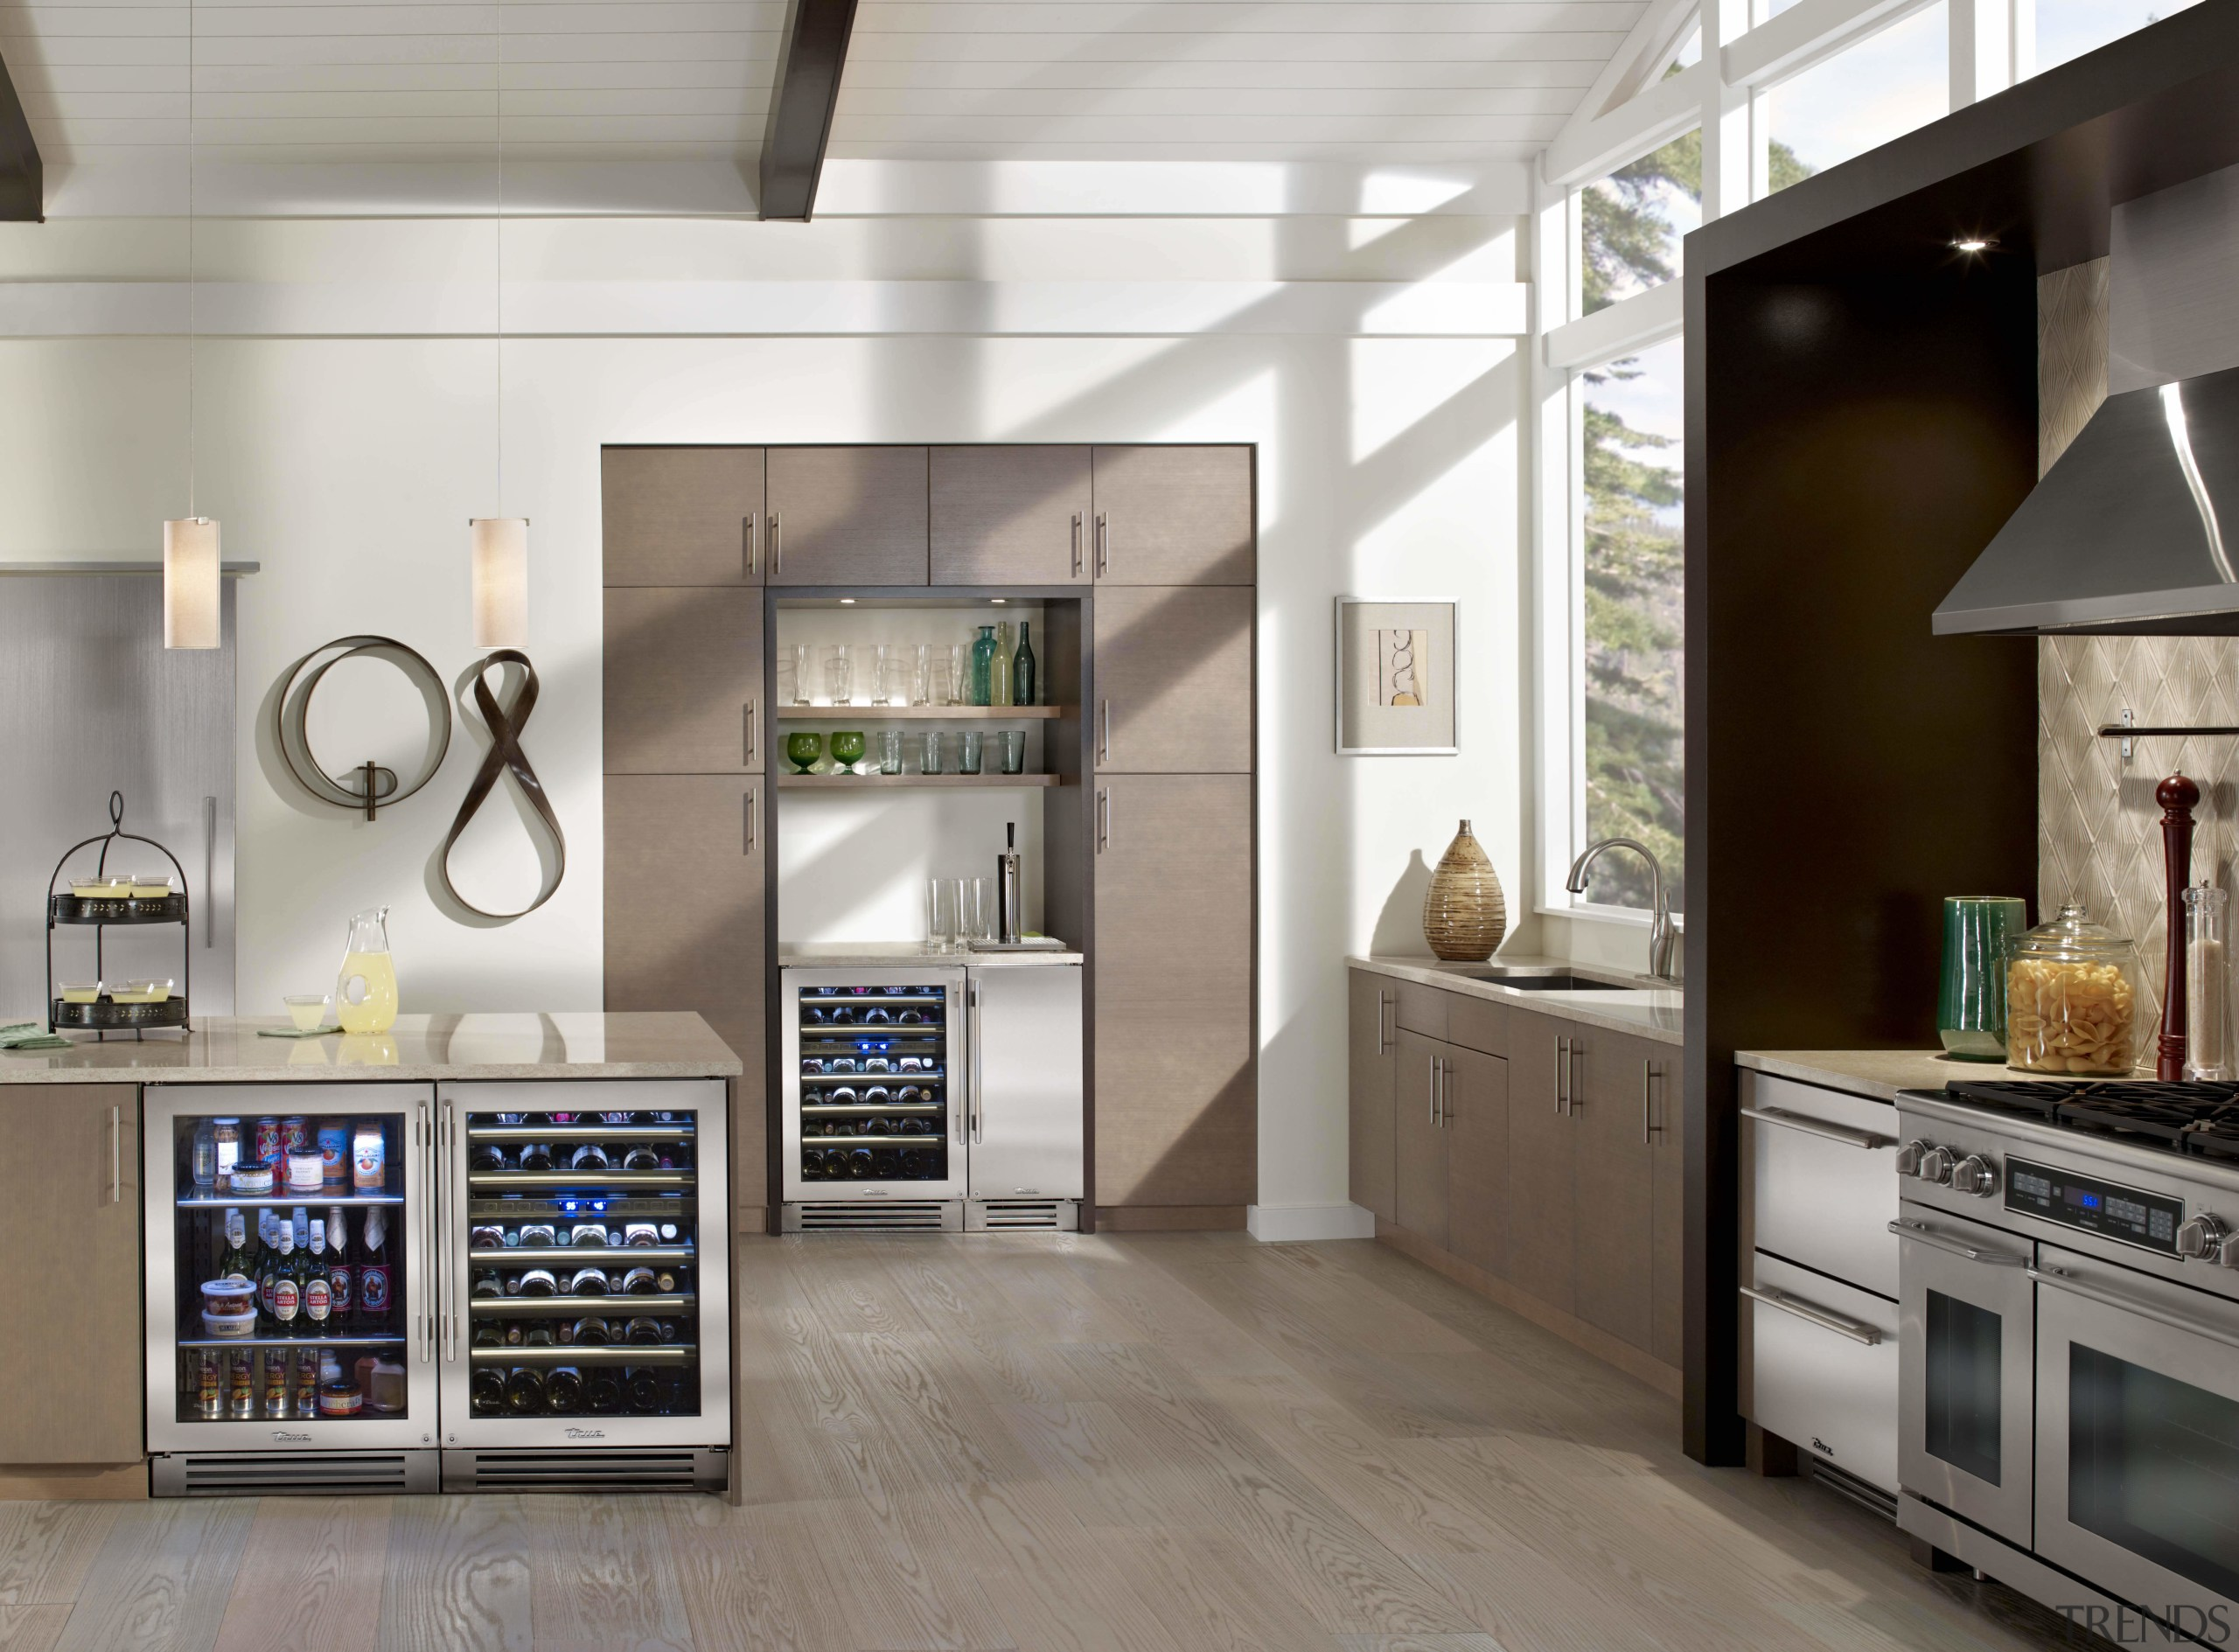 this kitchen is organised into a number of countertop, home appliance, interior design, kitchen, kitchen appliance, major appliance, refrigerator, gray